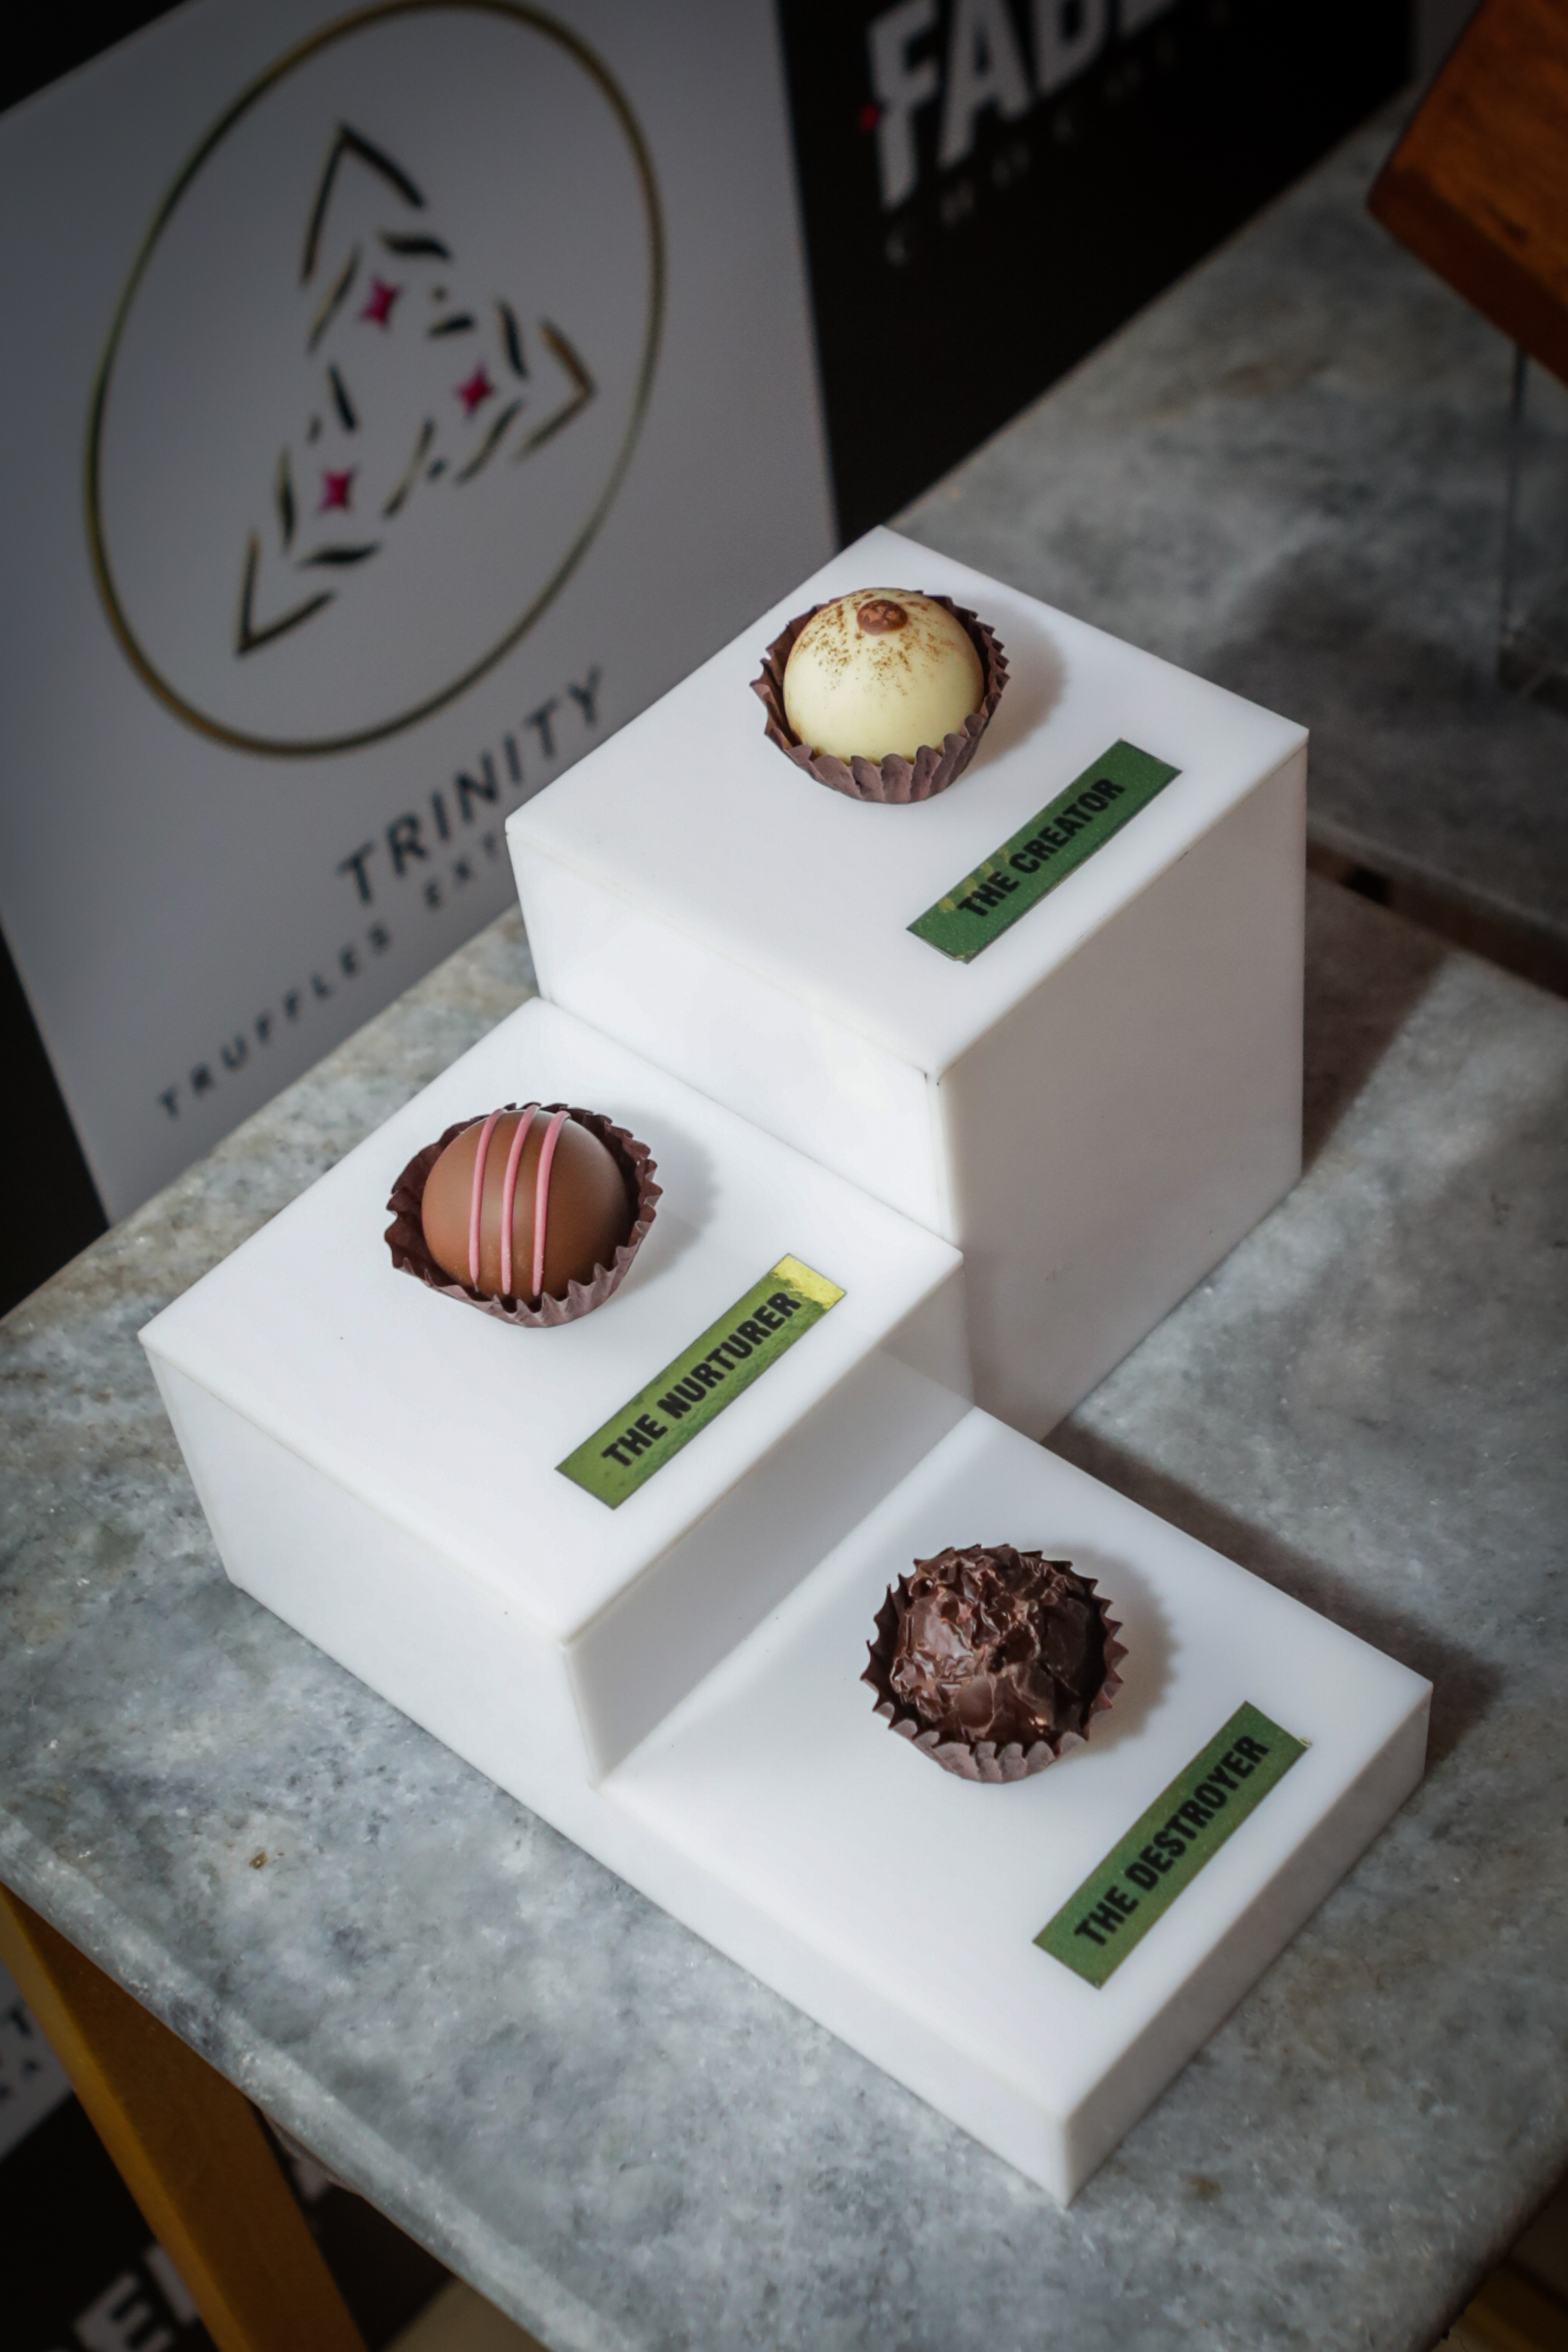 The Most Expensive Chocolate_Trinity – Truffles Extraordinaire' by ITC's Fabelle Exquisite Chocolates